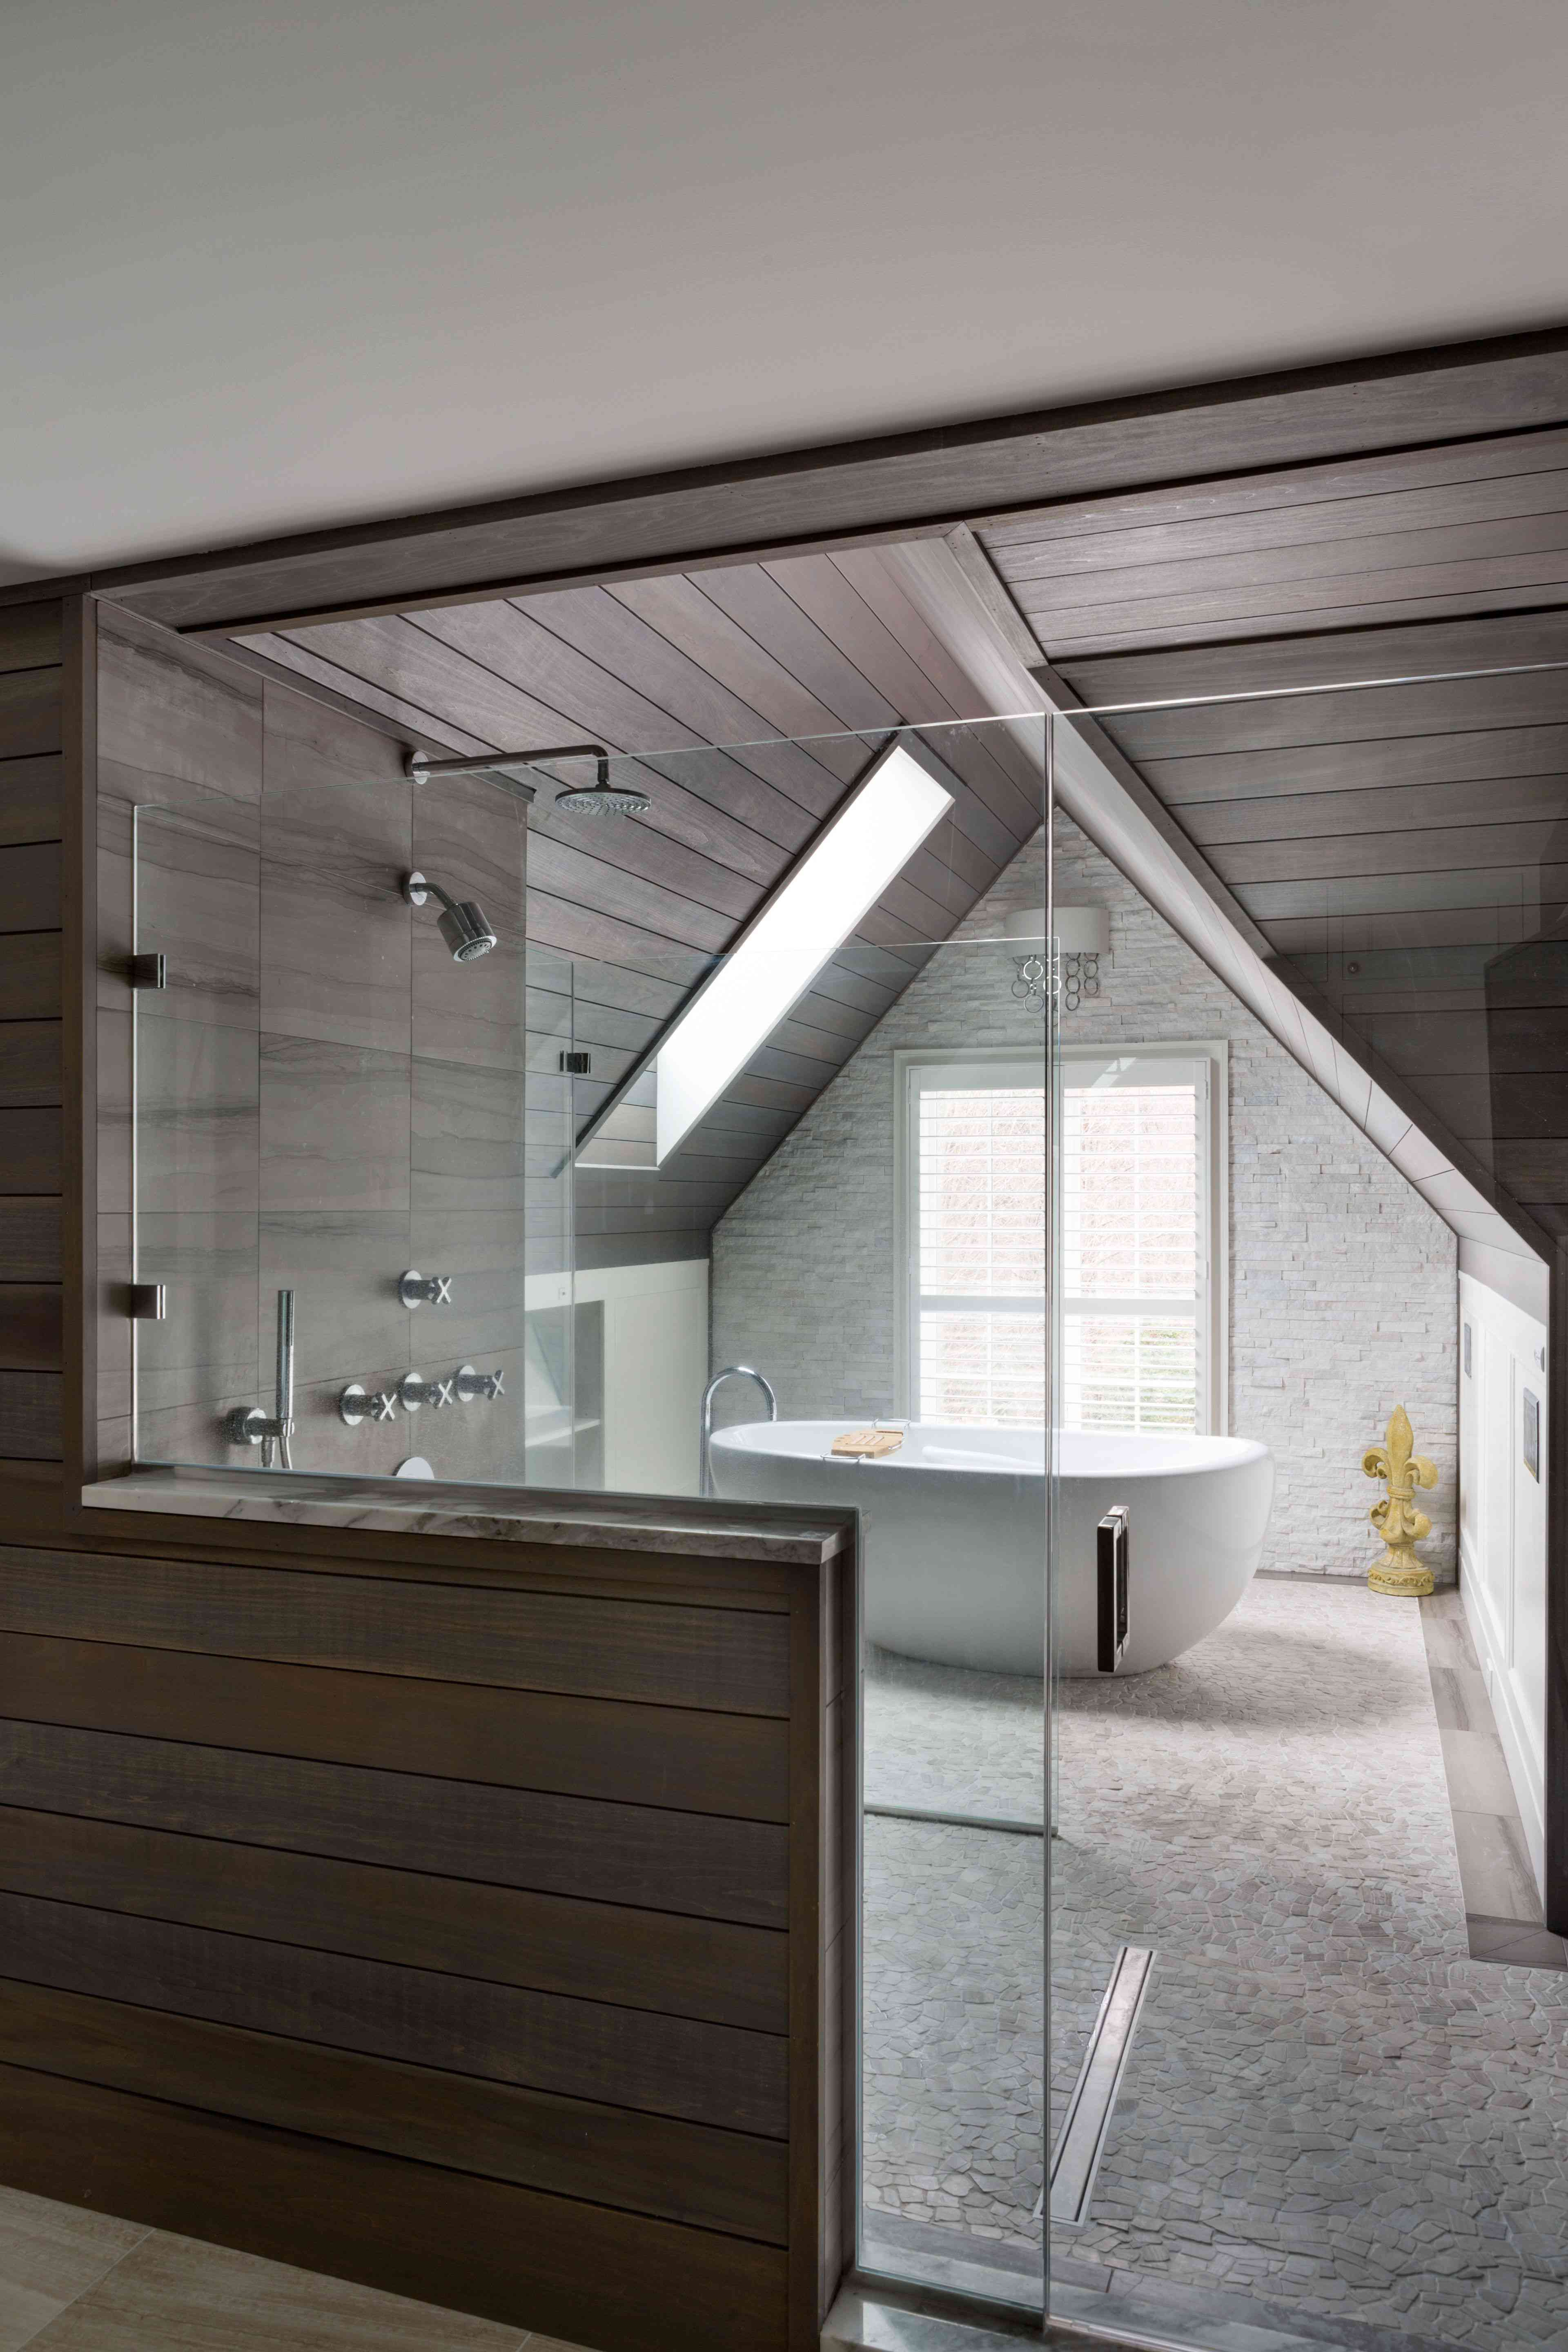 Rustic bathroom with sloped ceiling